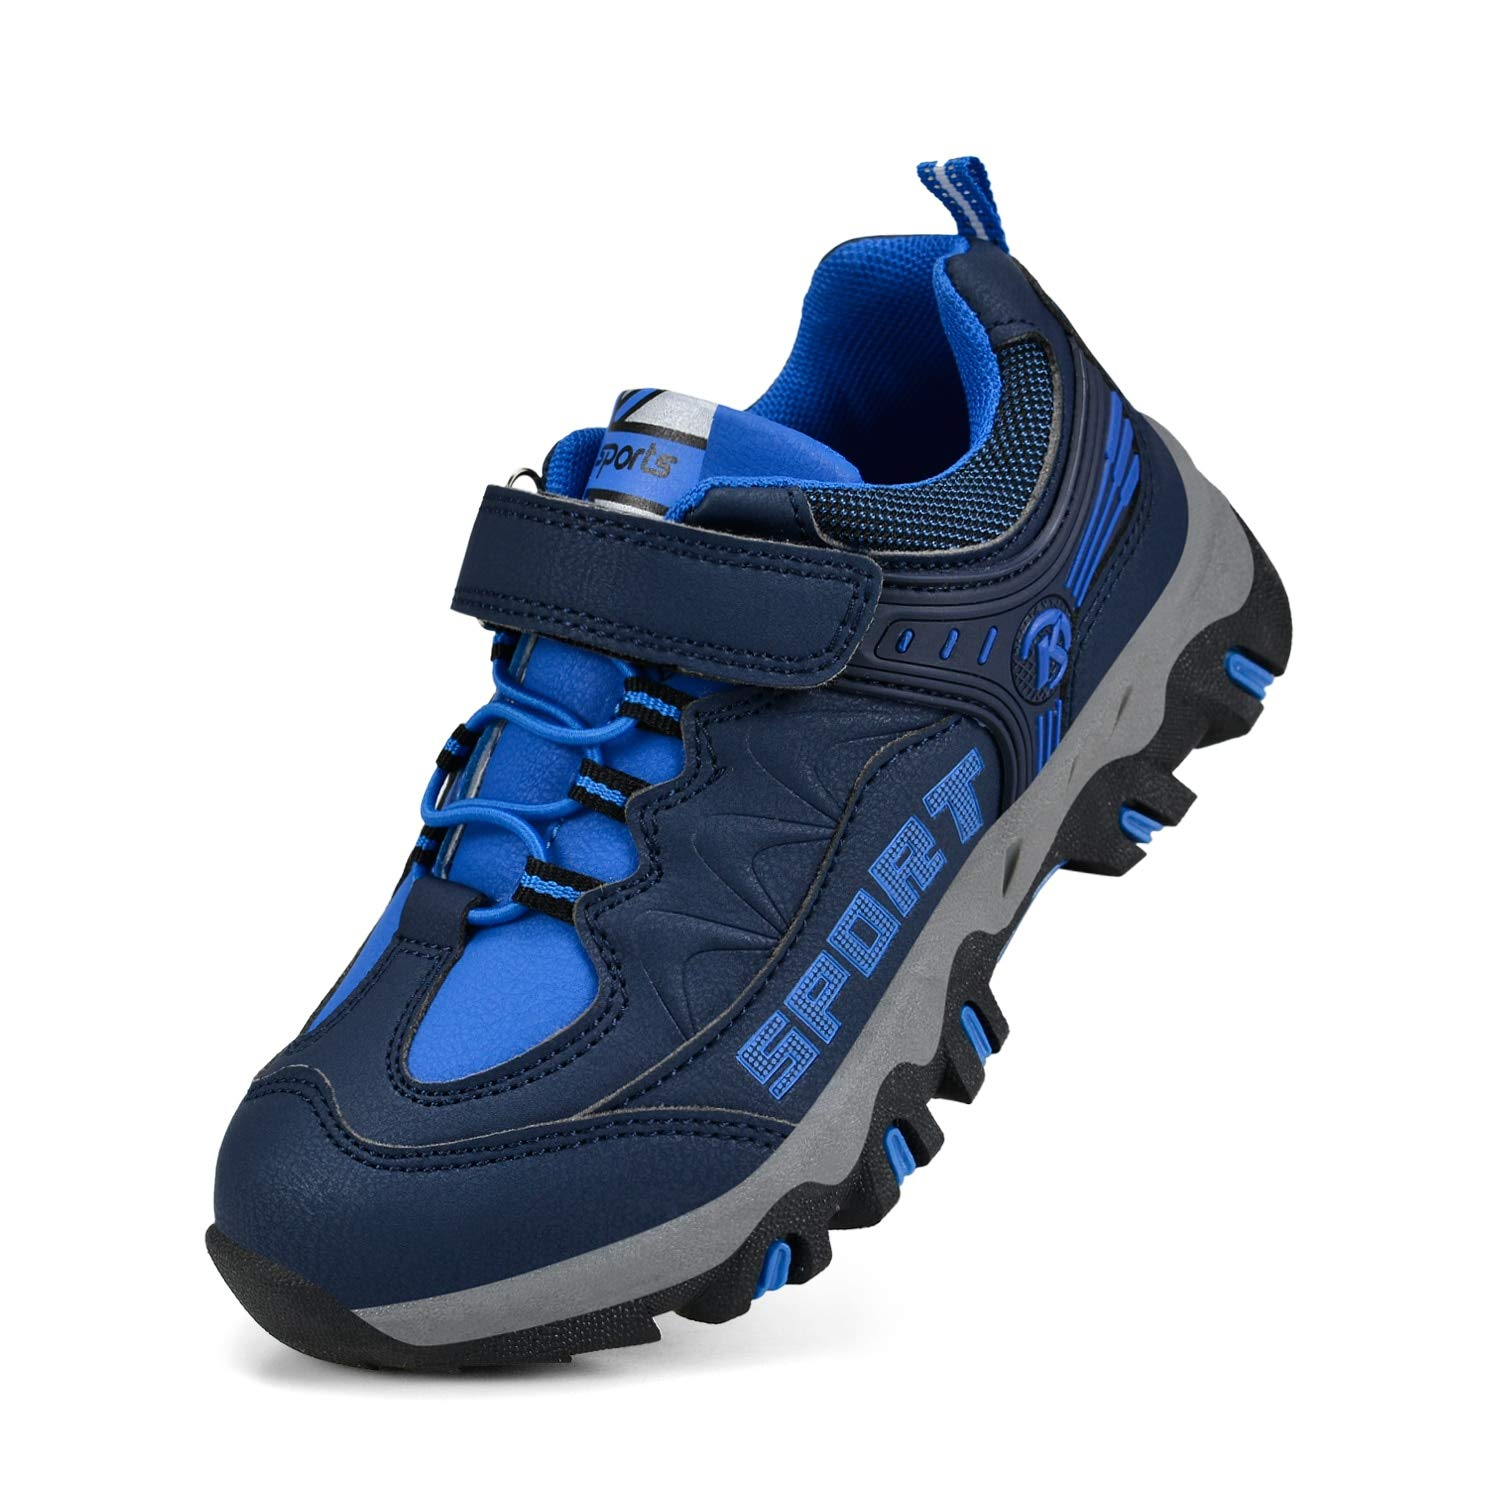 MARSVOVO Kids Sneakers Waterproof Outdoor Non-Slip Hiking Running Shoes Navy Blue 4 M US by MARSVOVO